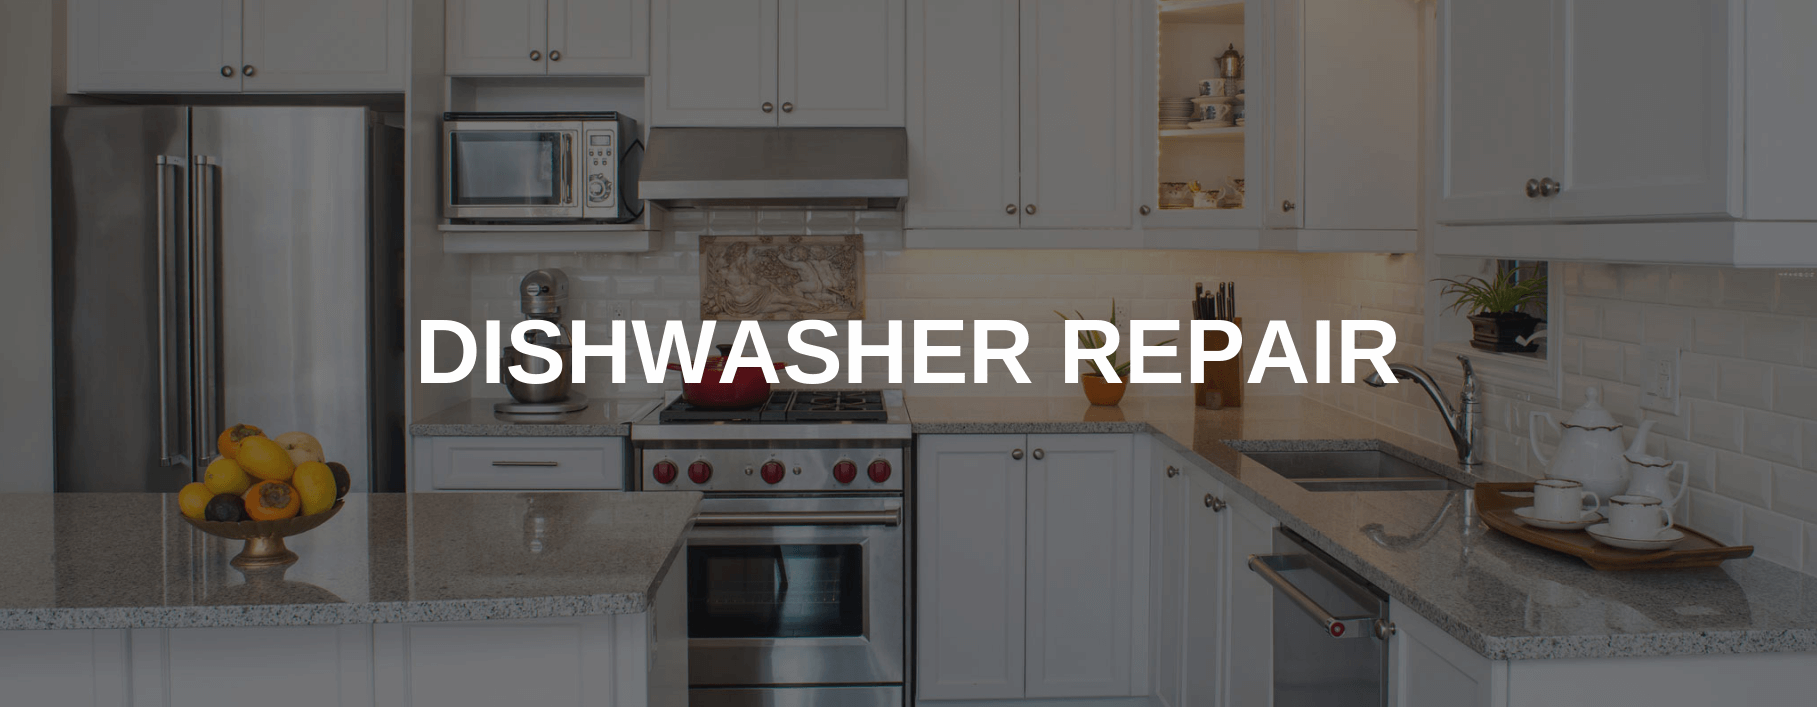 dishwasher repair skokie